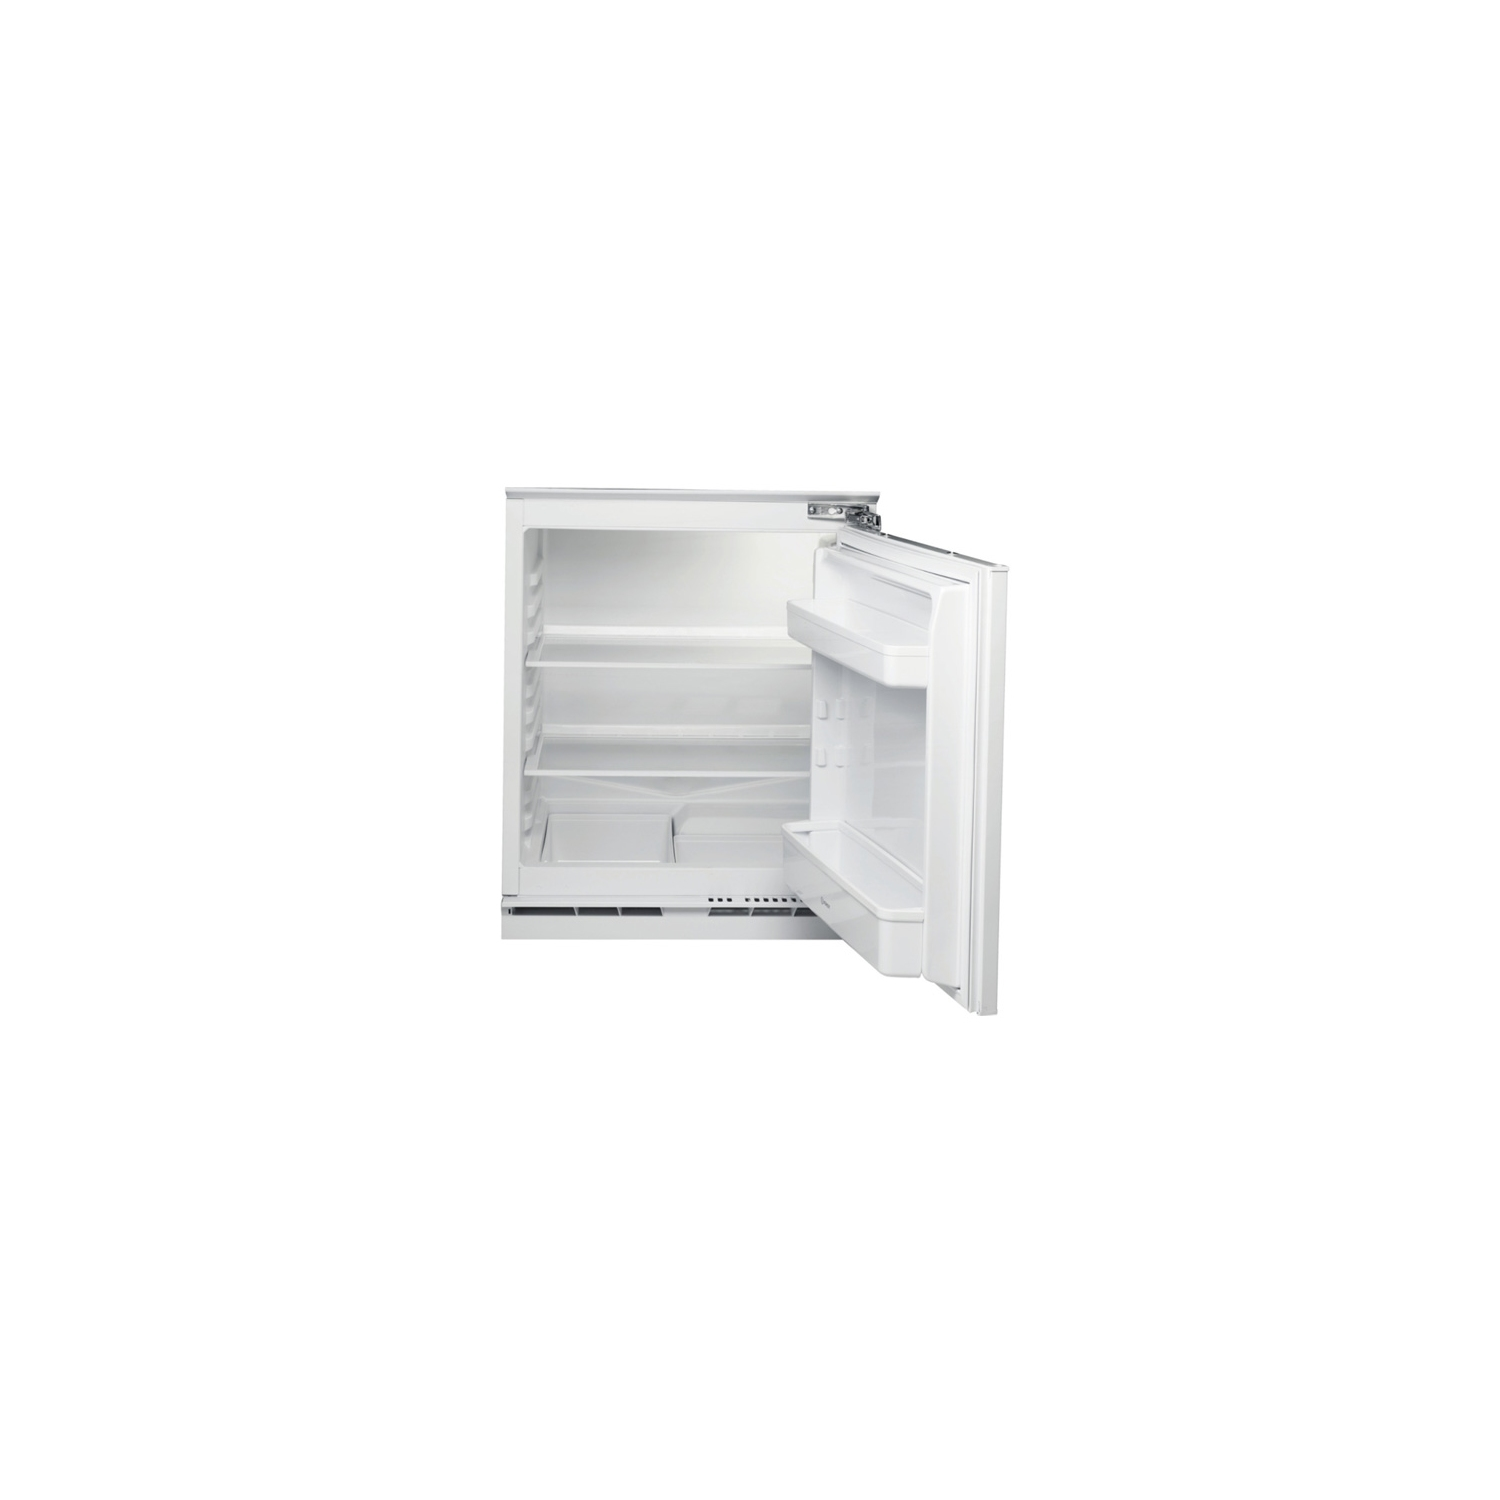 Indesit 60cm Built-Under Fridge - White - A+ Rated - 0